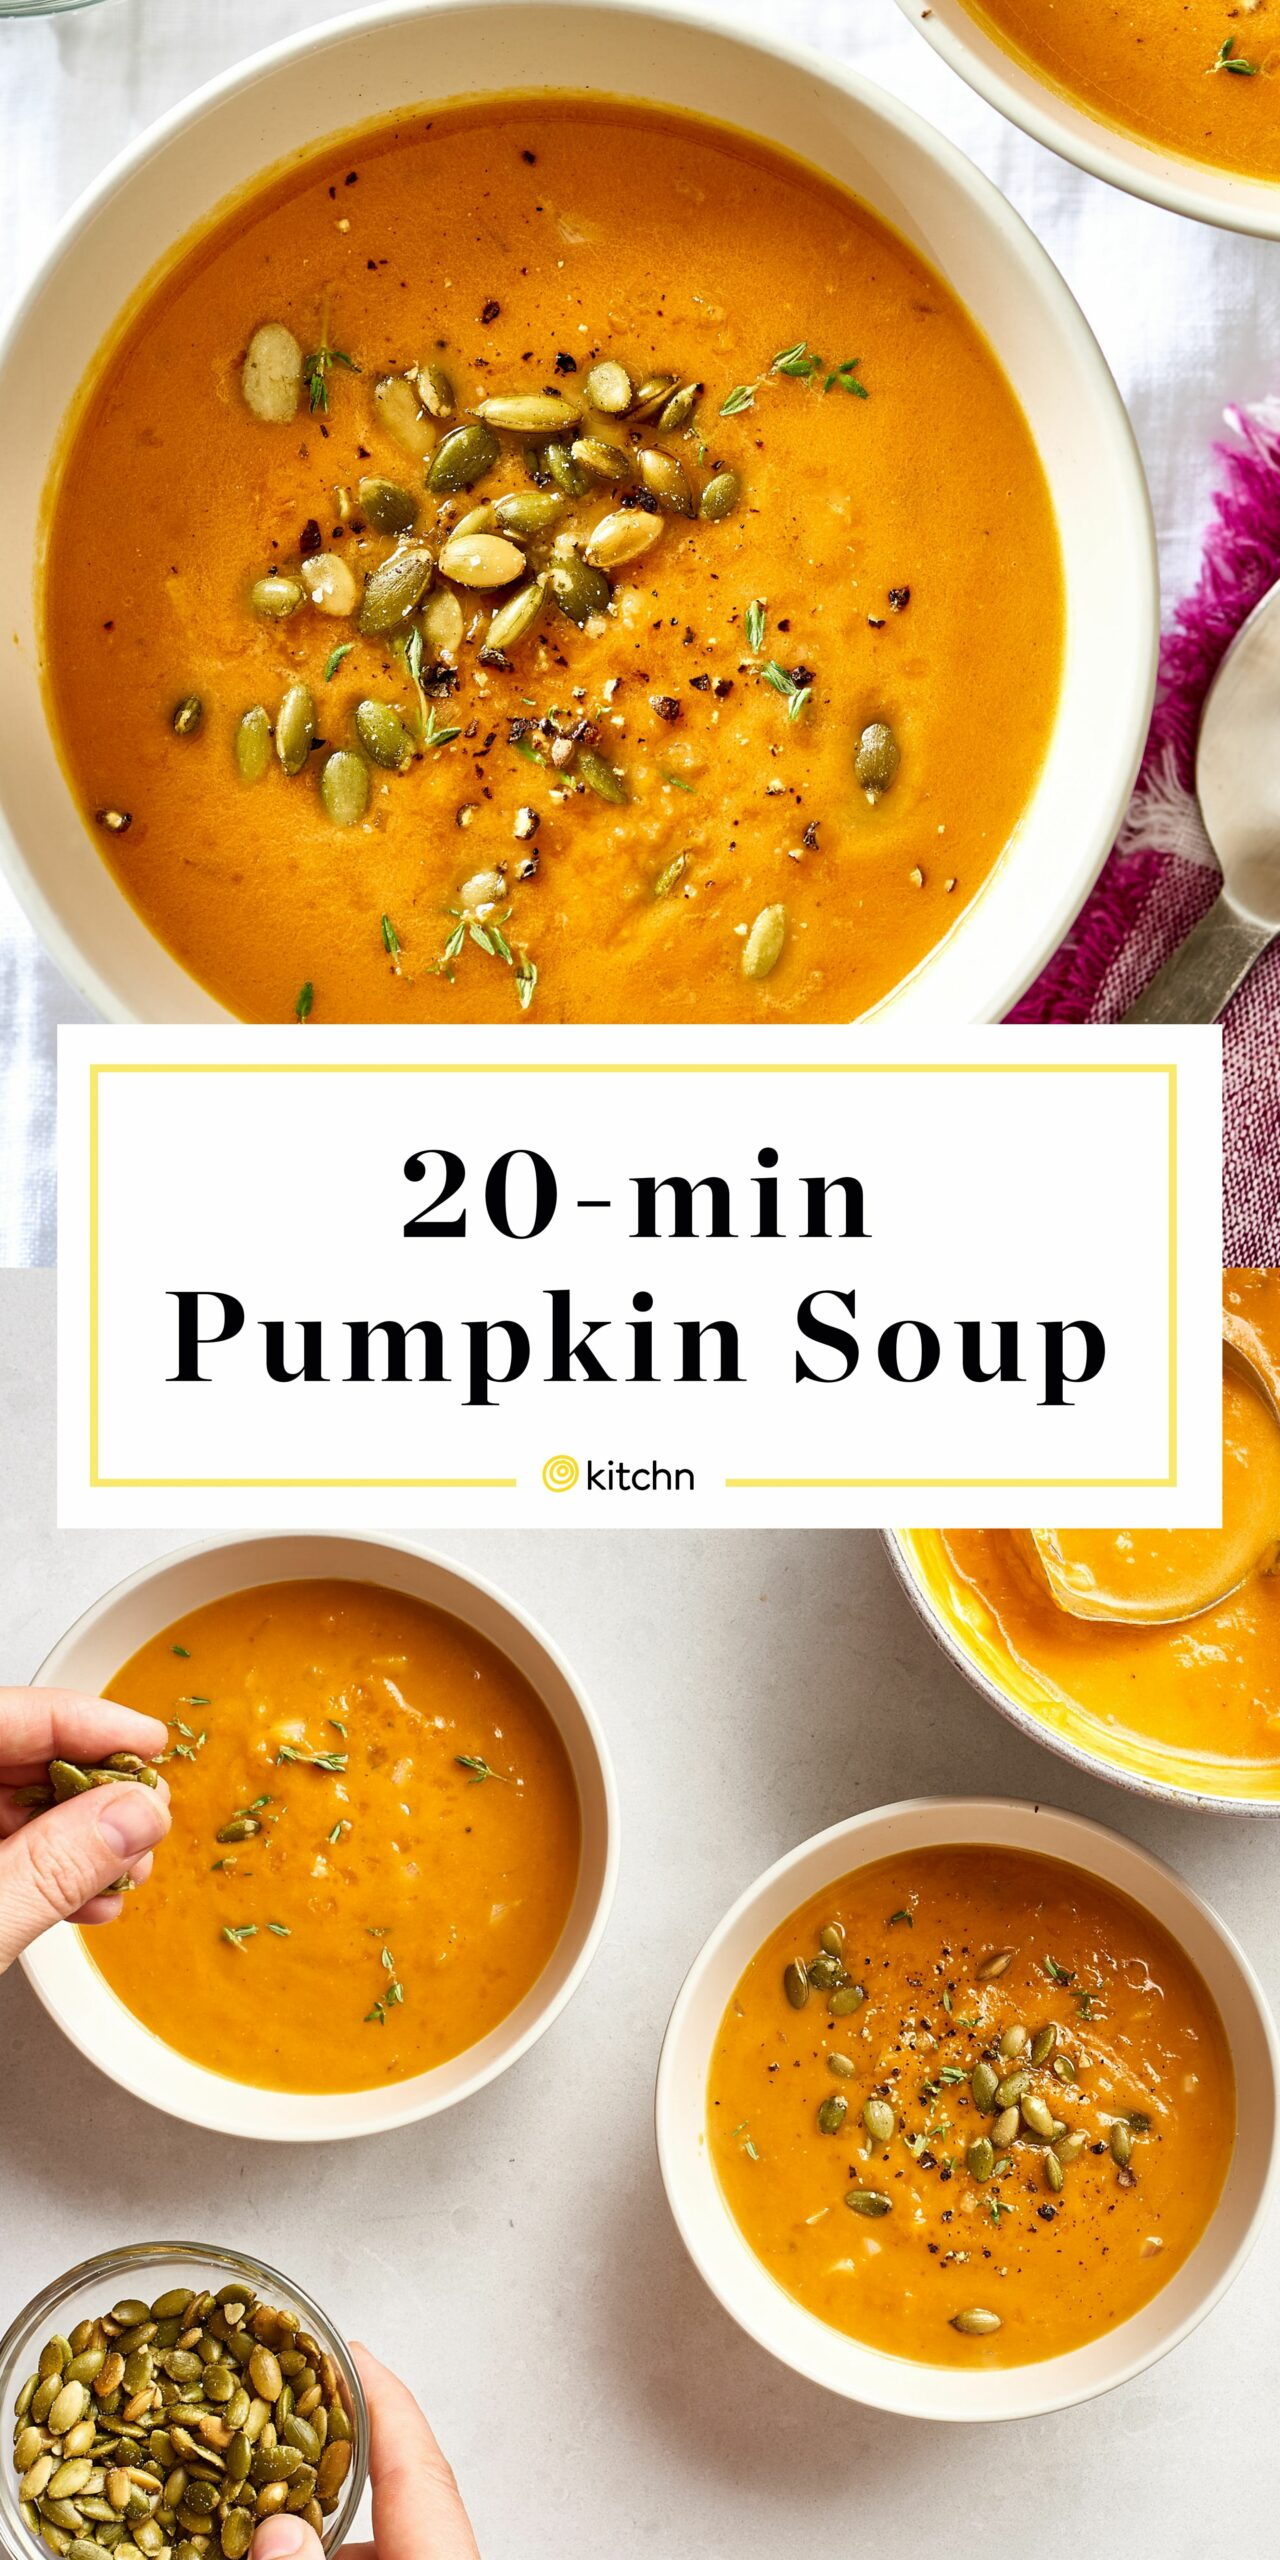 How To Make Pumpkin Soup in 11 Minutes - Recipes Pumpkin Soup